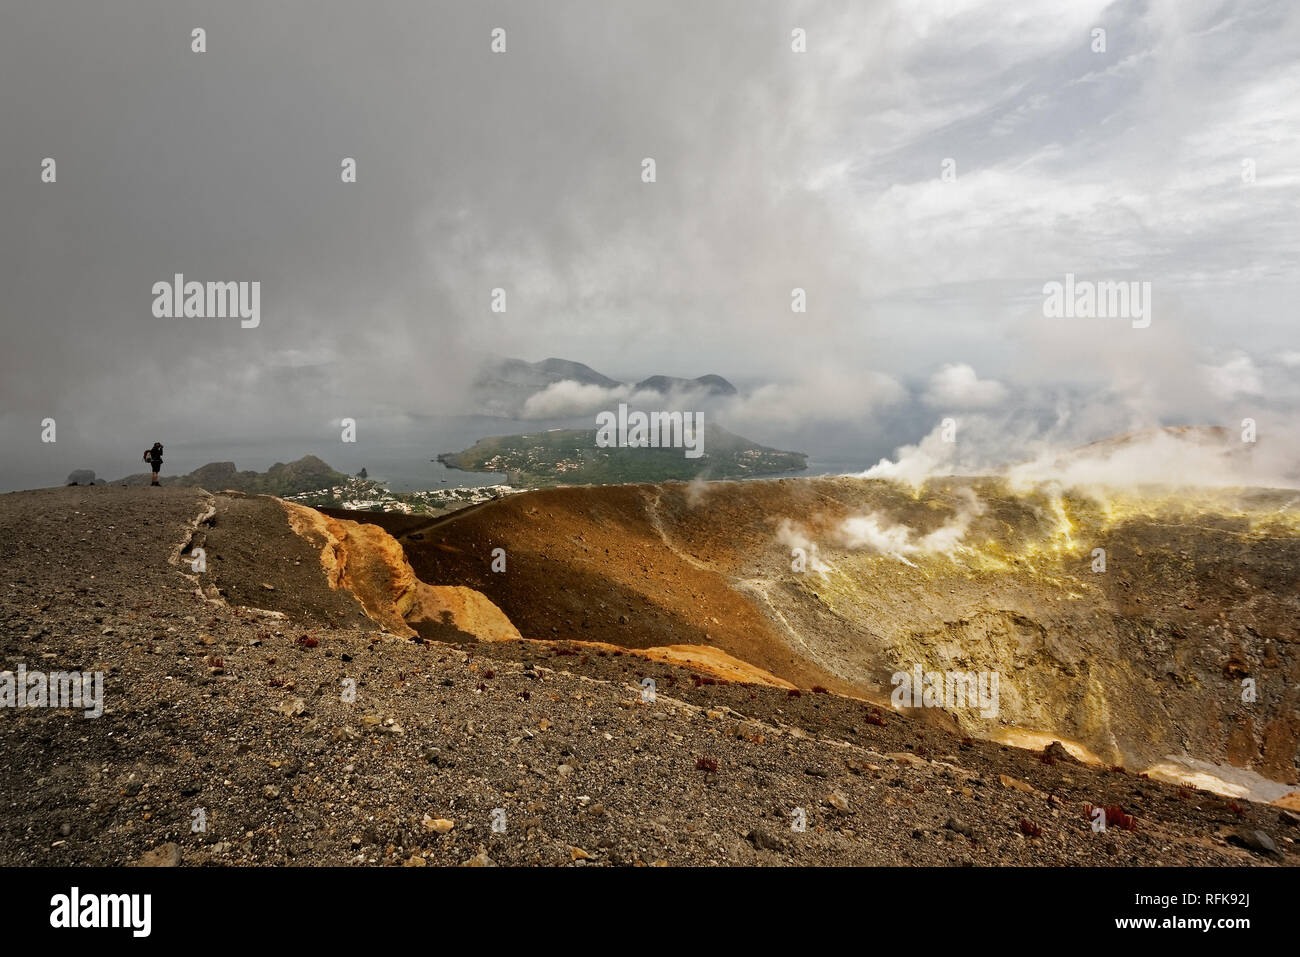 Wide view of the crater rim over the Aeolian Islands in the Mediterranean, dramatic clouds and sulfur fumes, person as a scale - Location: Italy, Aeol - Stock Image